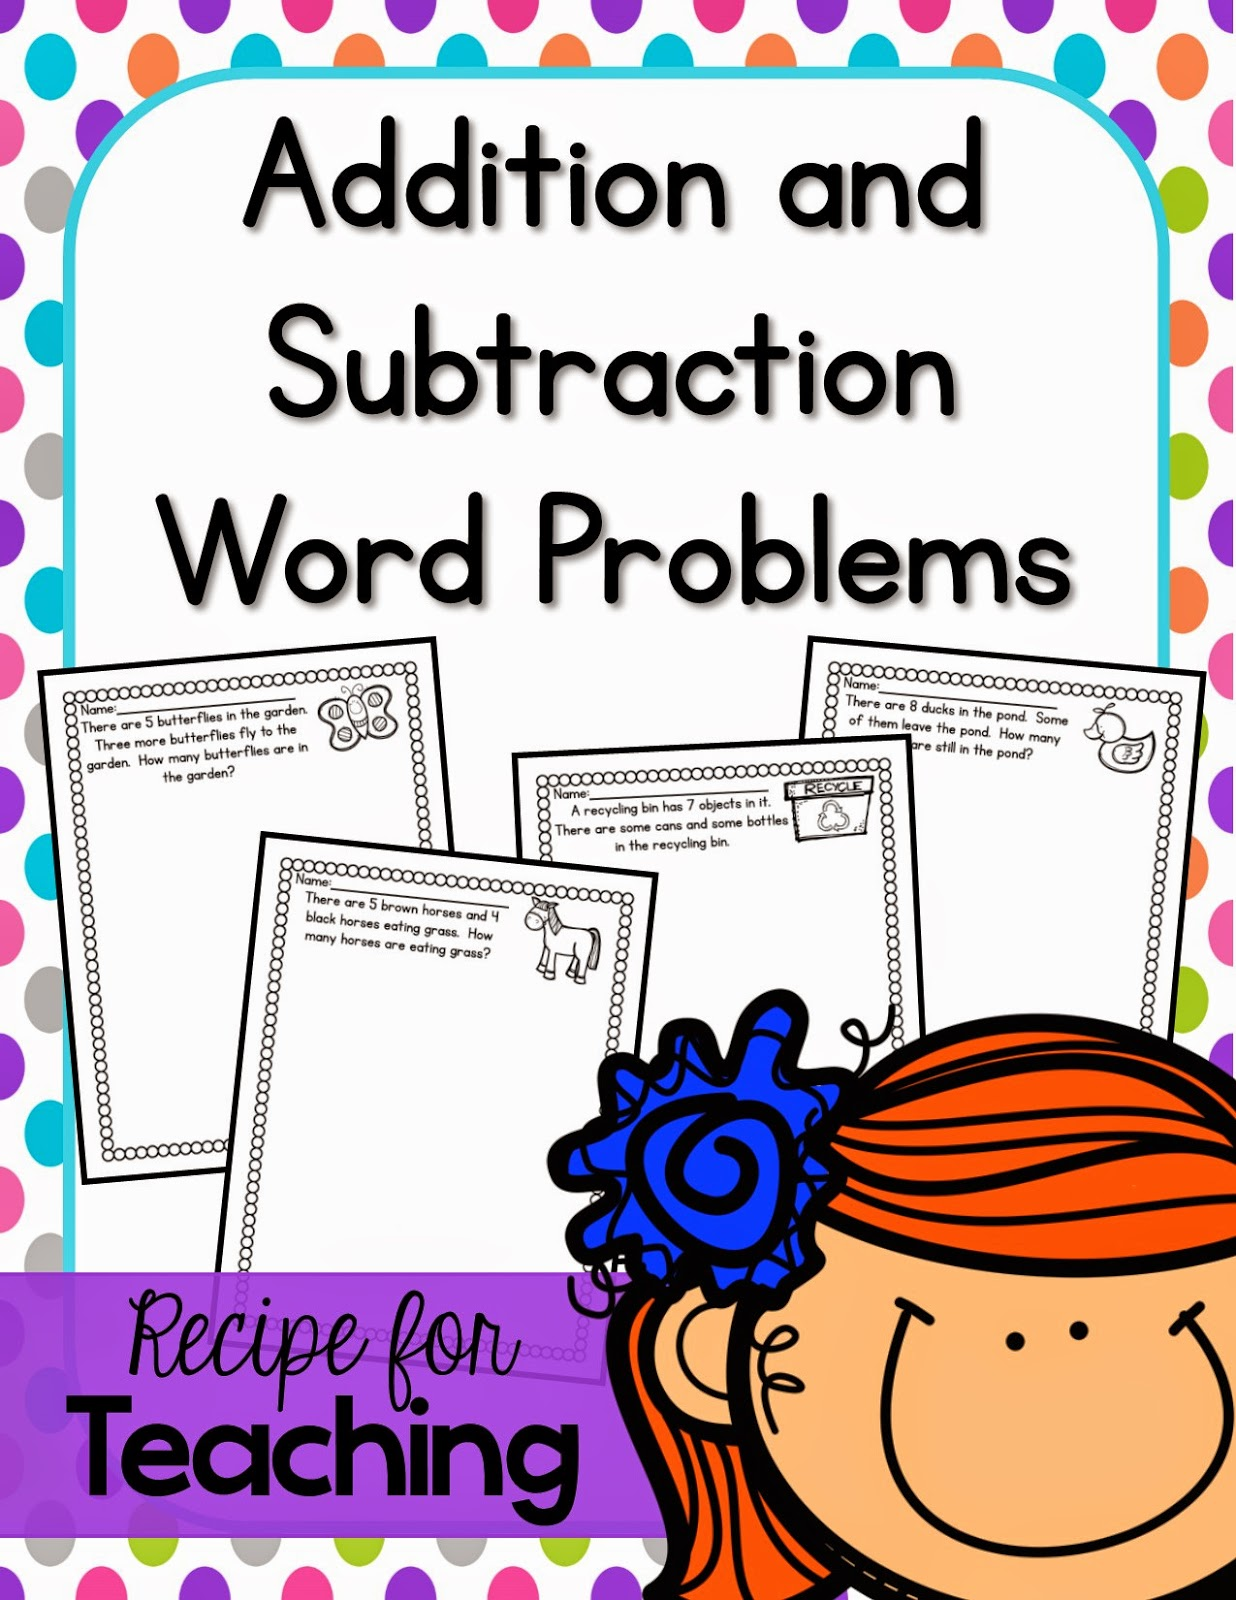 https://www.teacherspayteachers.com/Product/Word-Problems-1821429